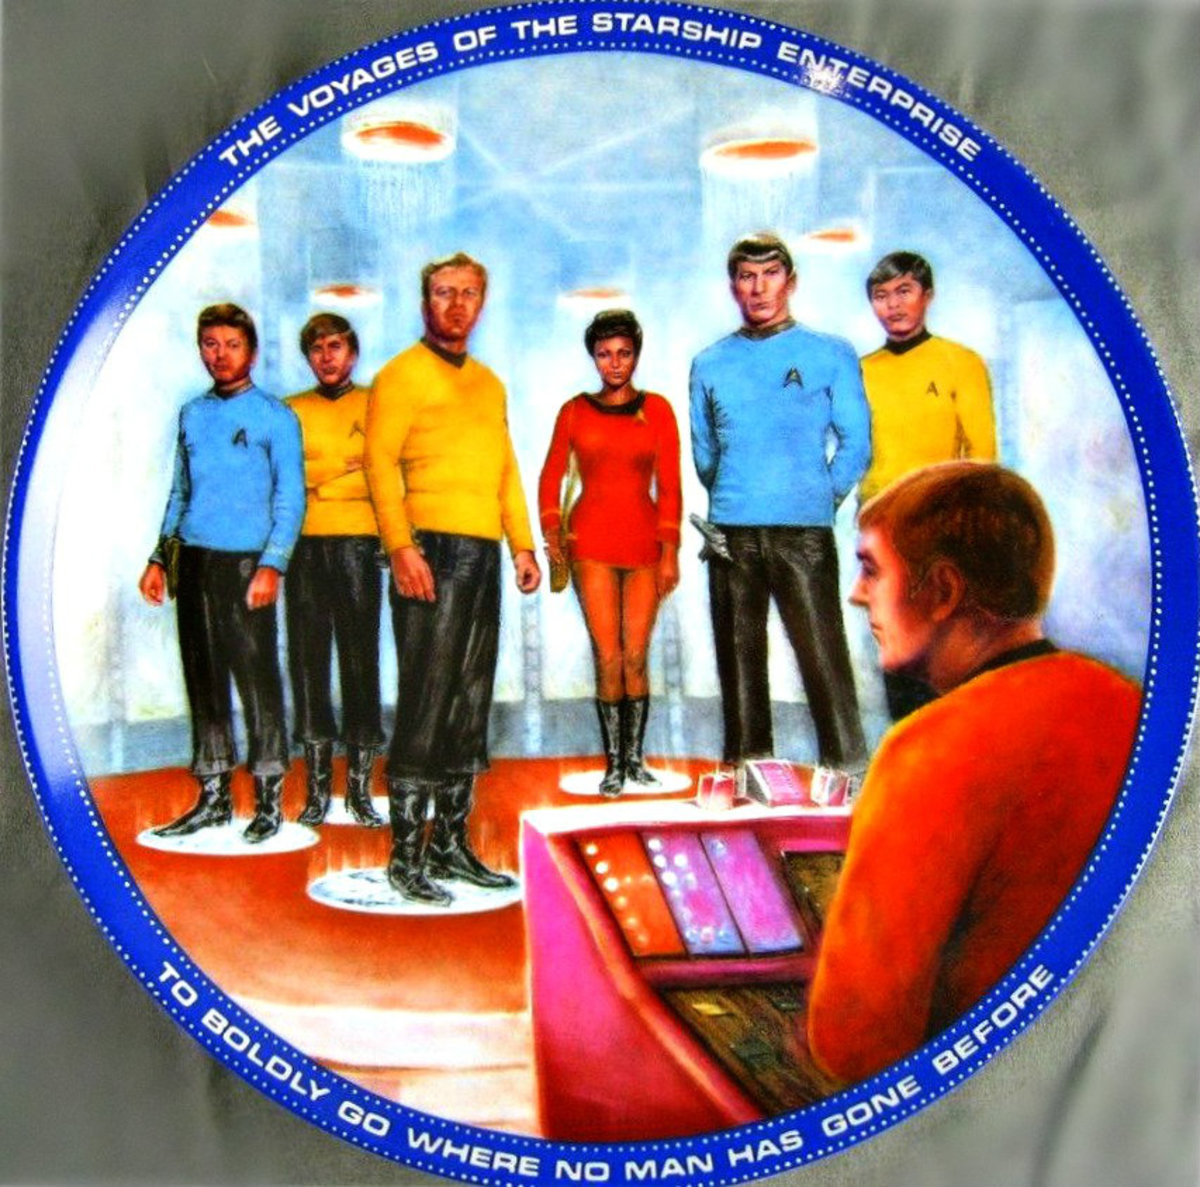 """One of the most frequently quoted expressions from """"Star Trek"""" is """"Beam me up, Scotty"""" - in which Starship Enterprise's futuristic equipment is used to transport crew members at lightning speeds."""